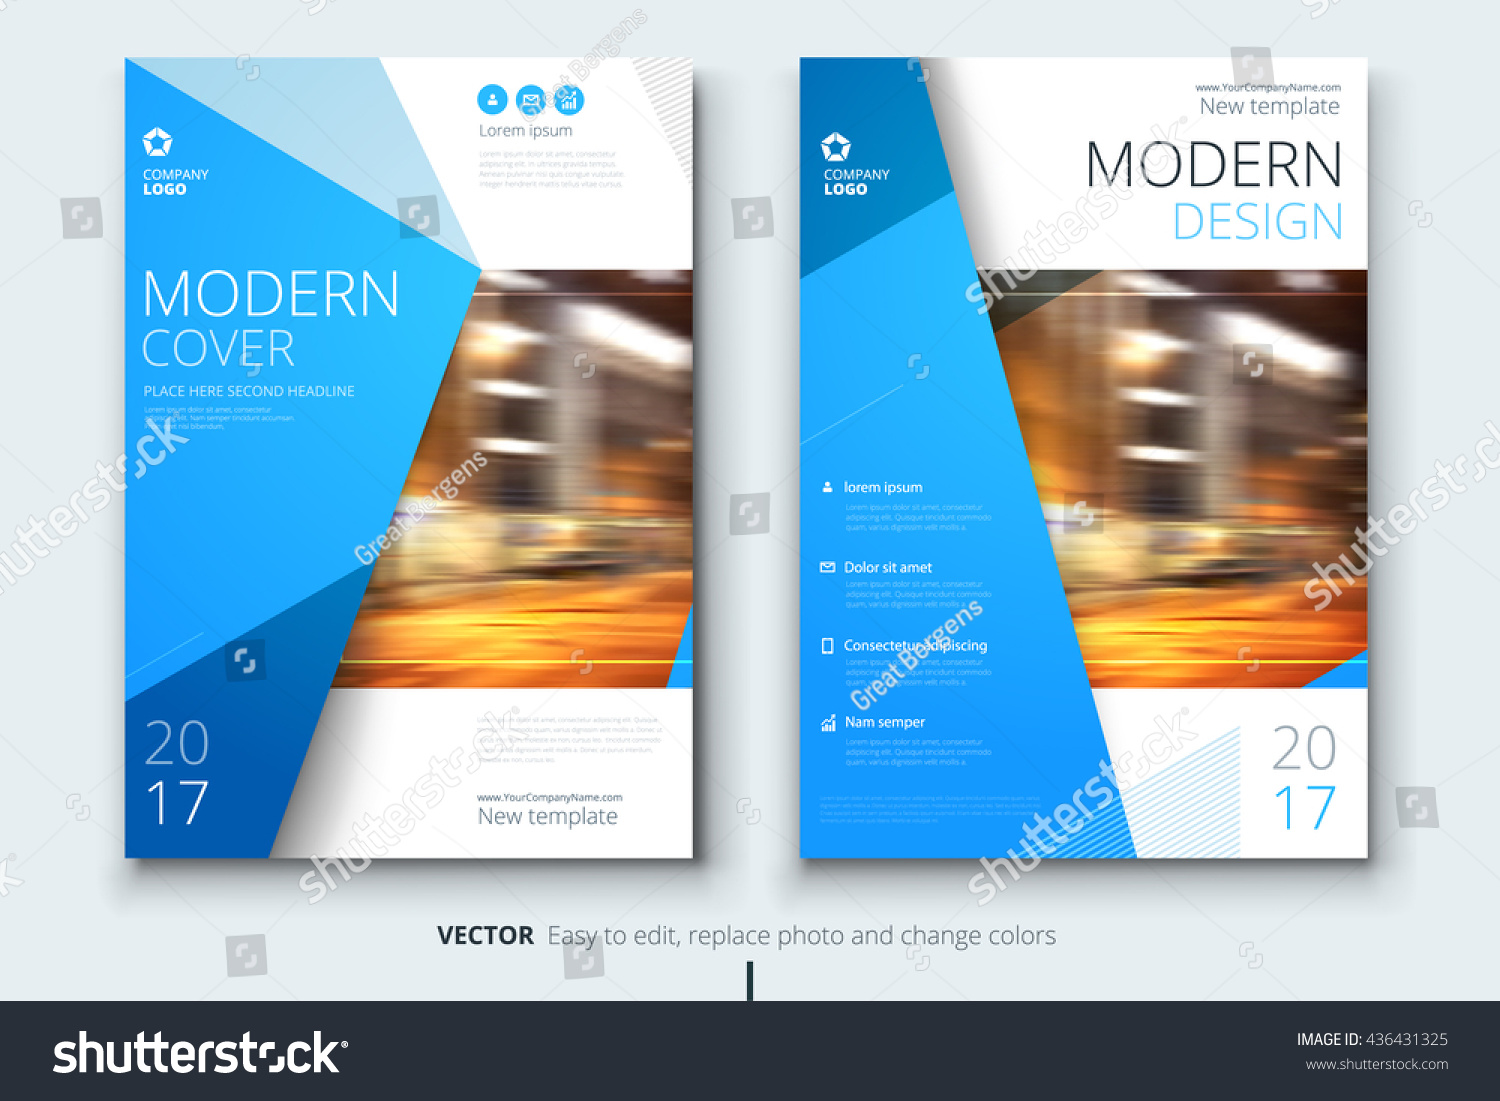 Cover design corporate business template brochure stock vector corporate business template for brochure annual report catalog magazine cheaphphosting Images